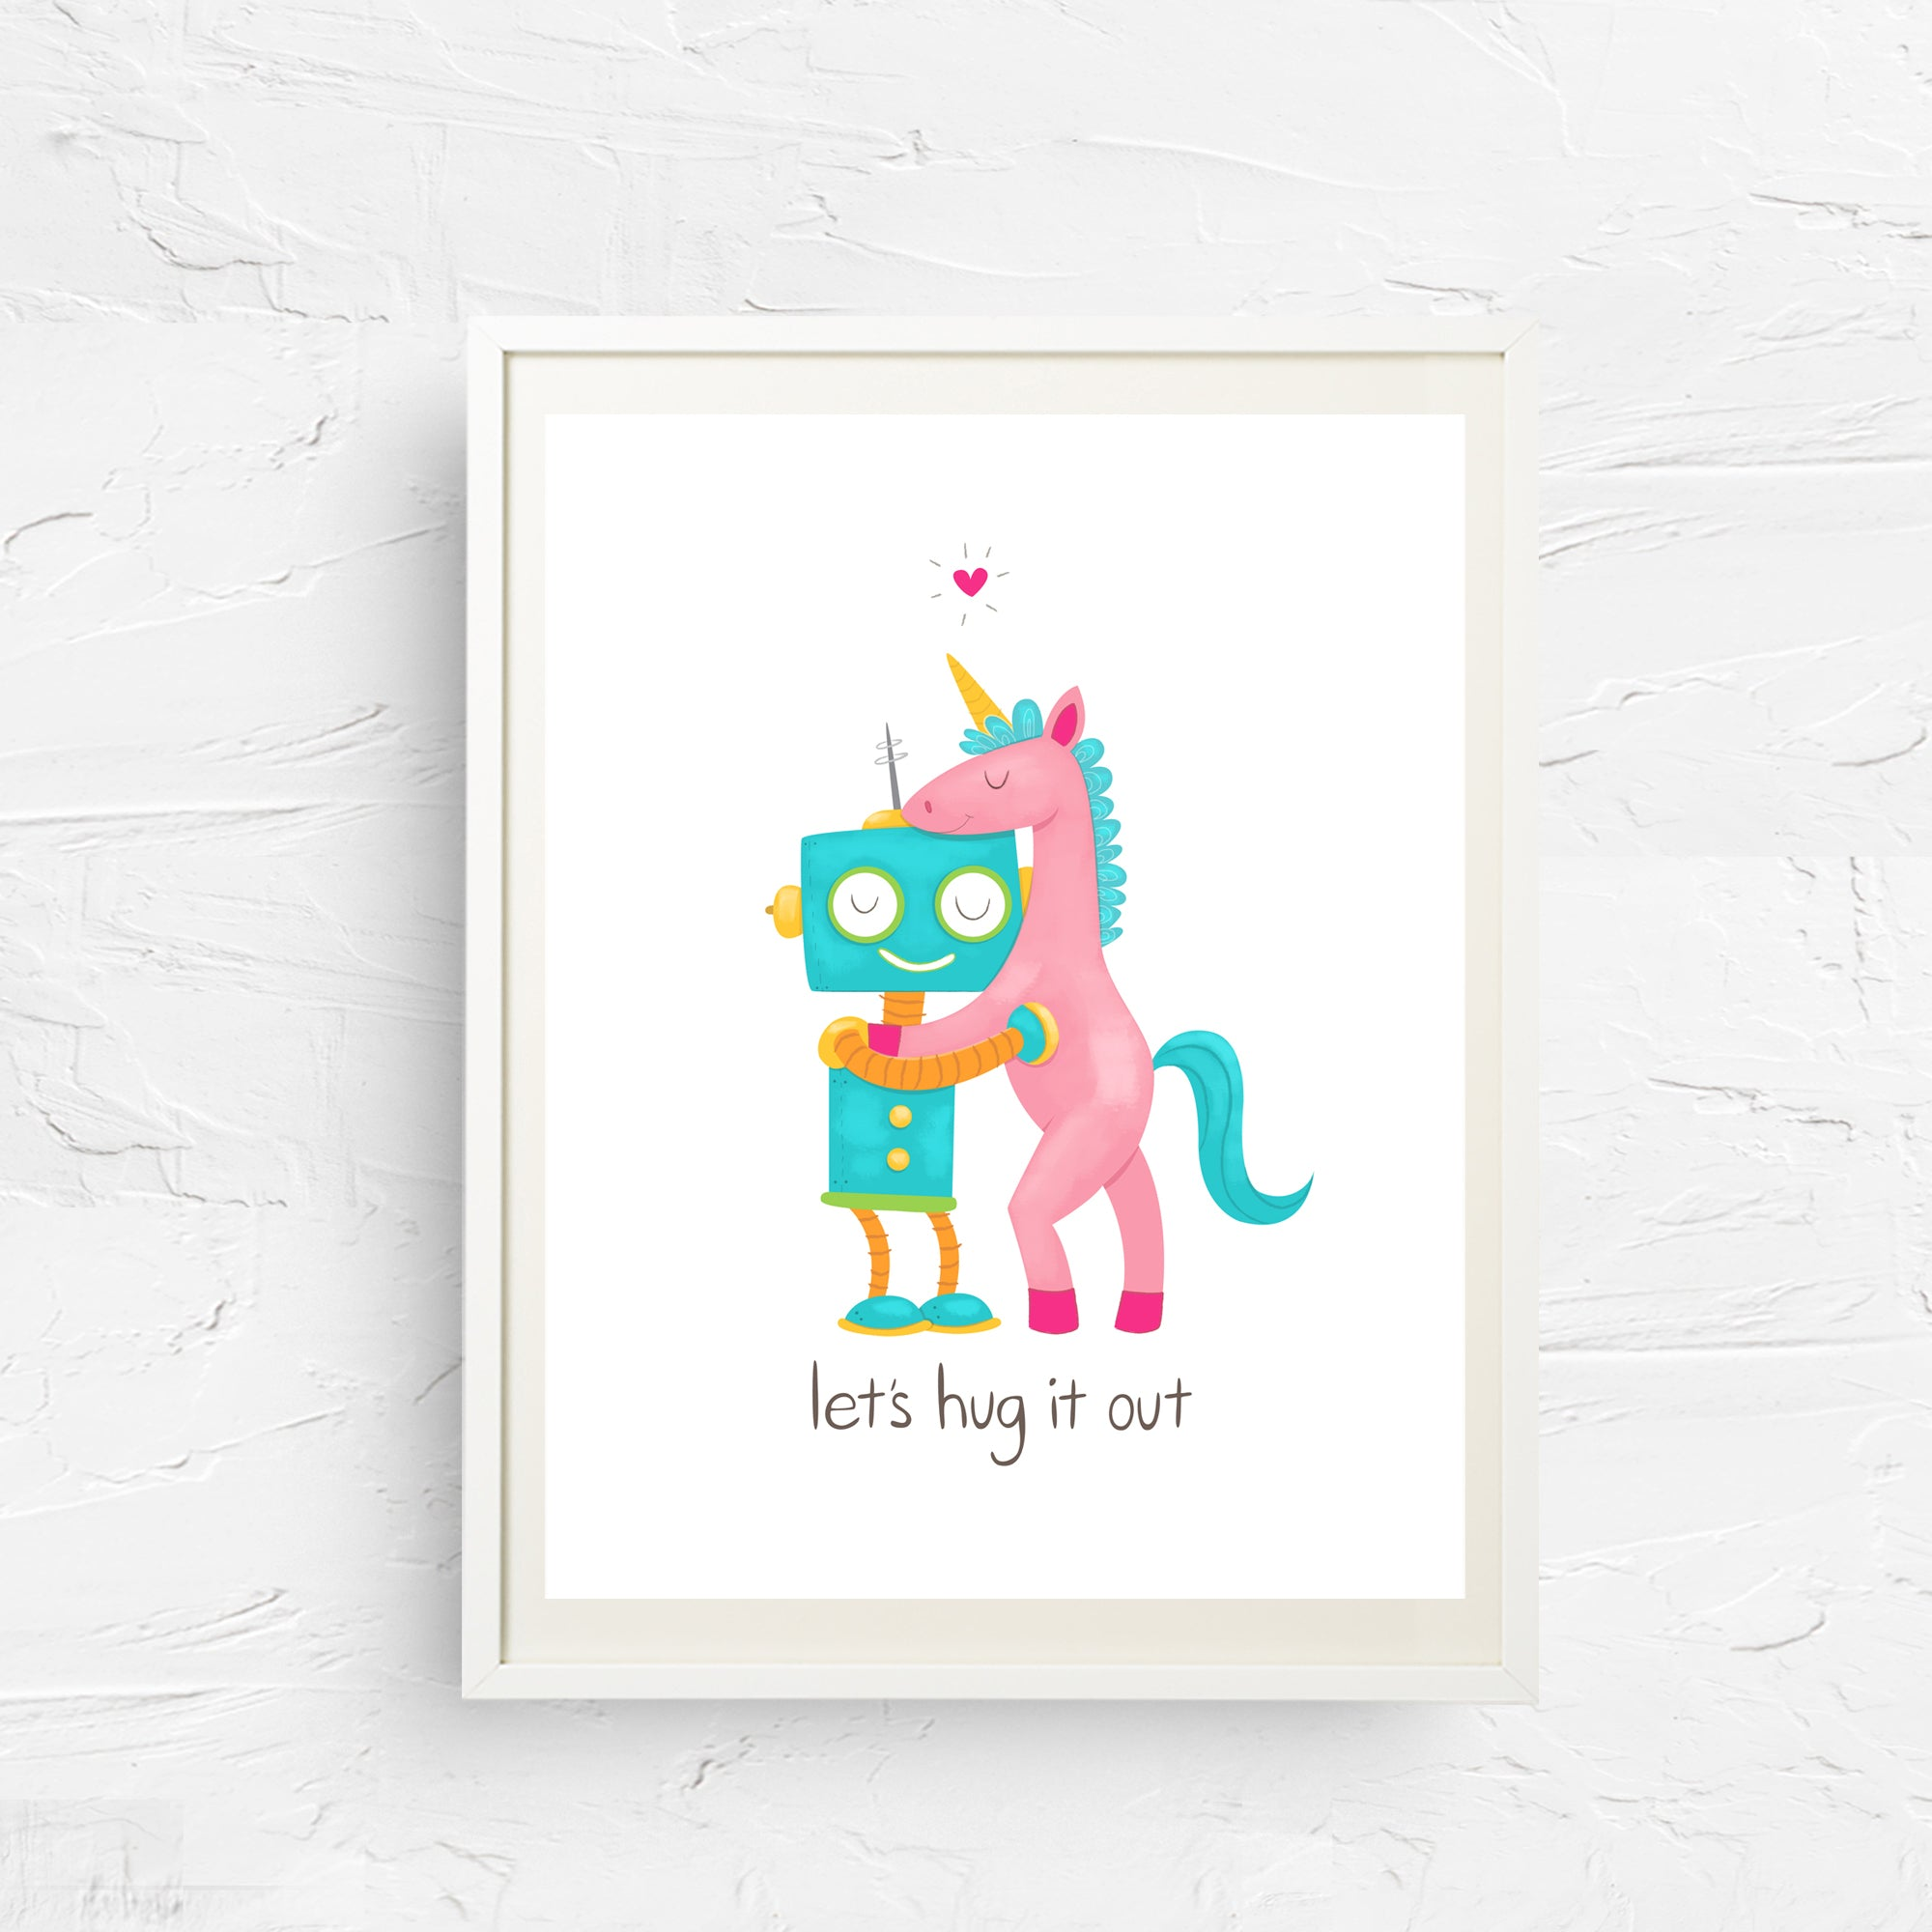 8x10, 11x14, art print, physical print, wall decor, free shipping, sale, coupon code, unicorn print, robot print, children's wall art, let's hug it out, kids room print